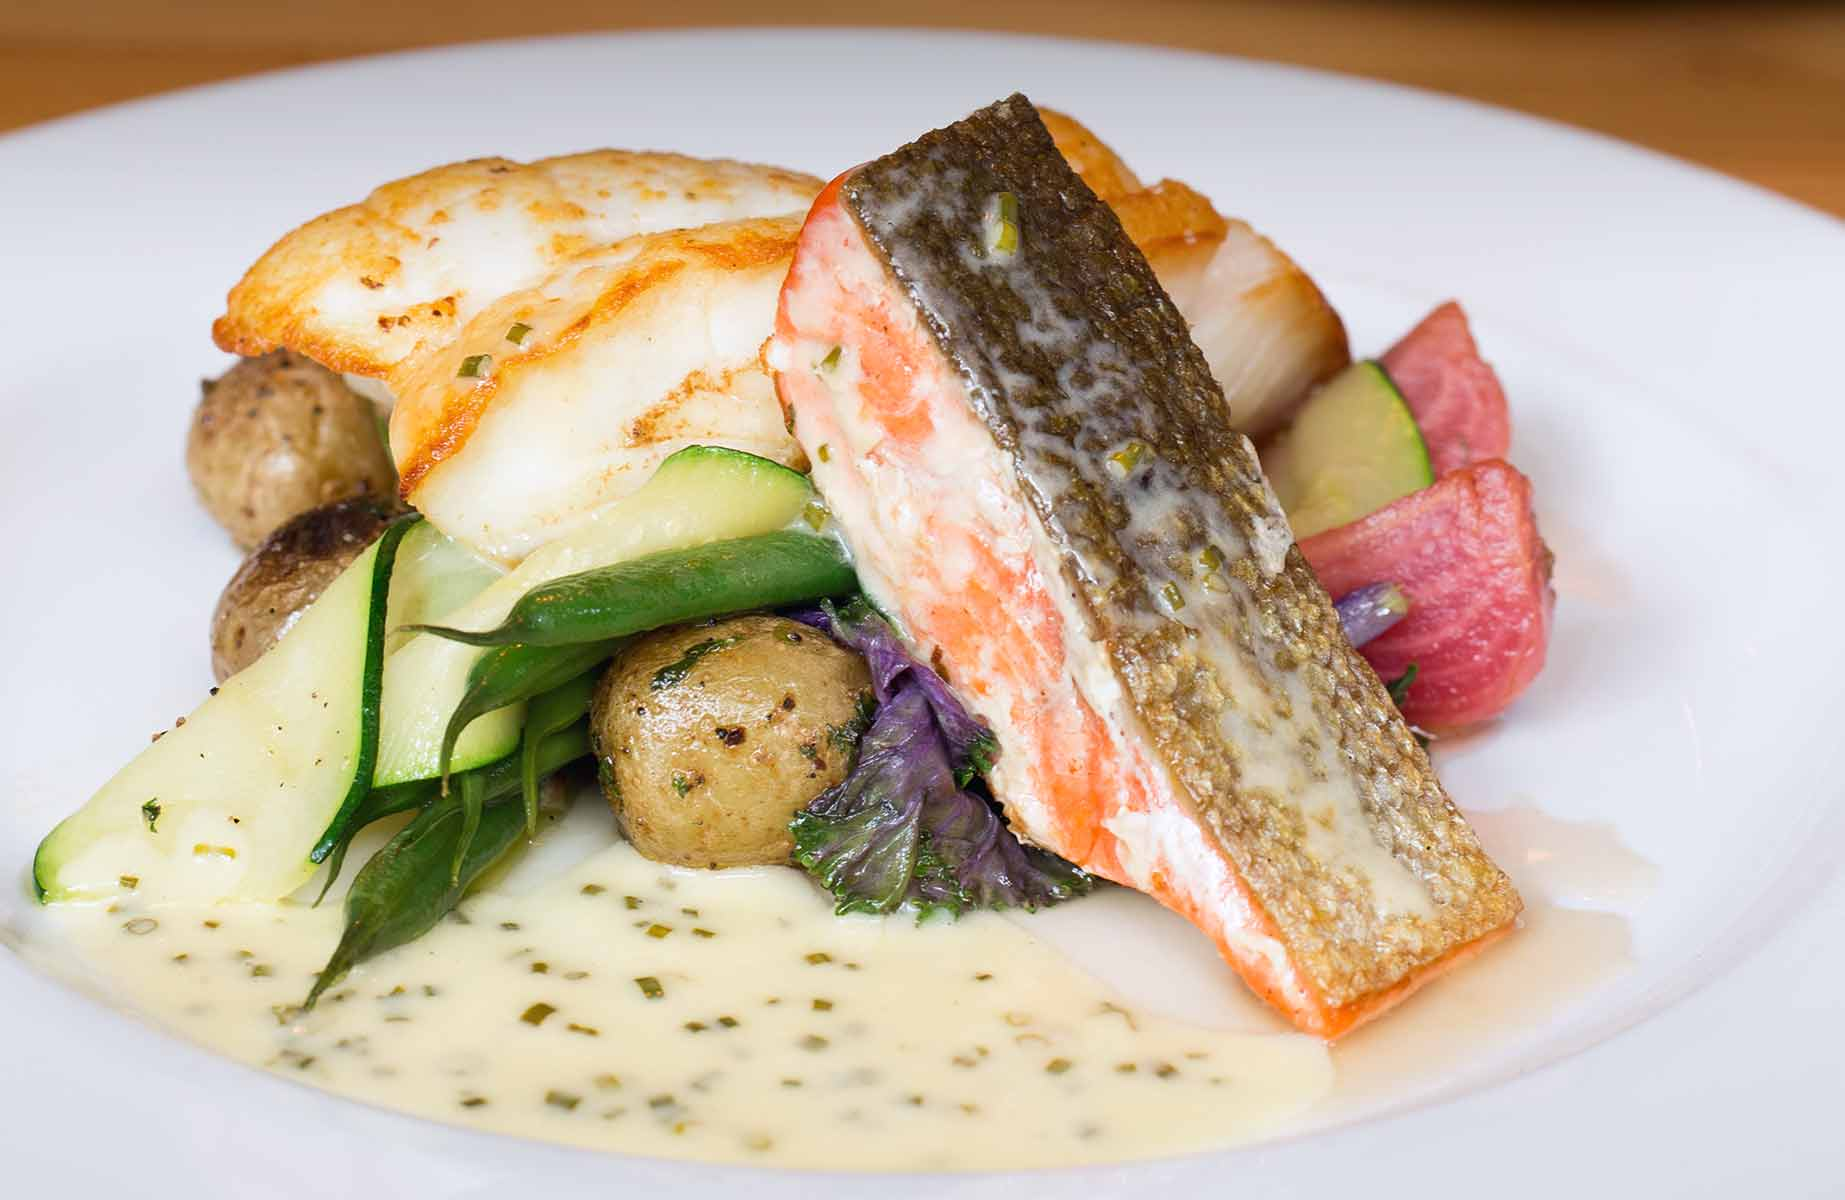 The Arctic char, coho salmon, and sturgeon from WildTale Coastal Grill